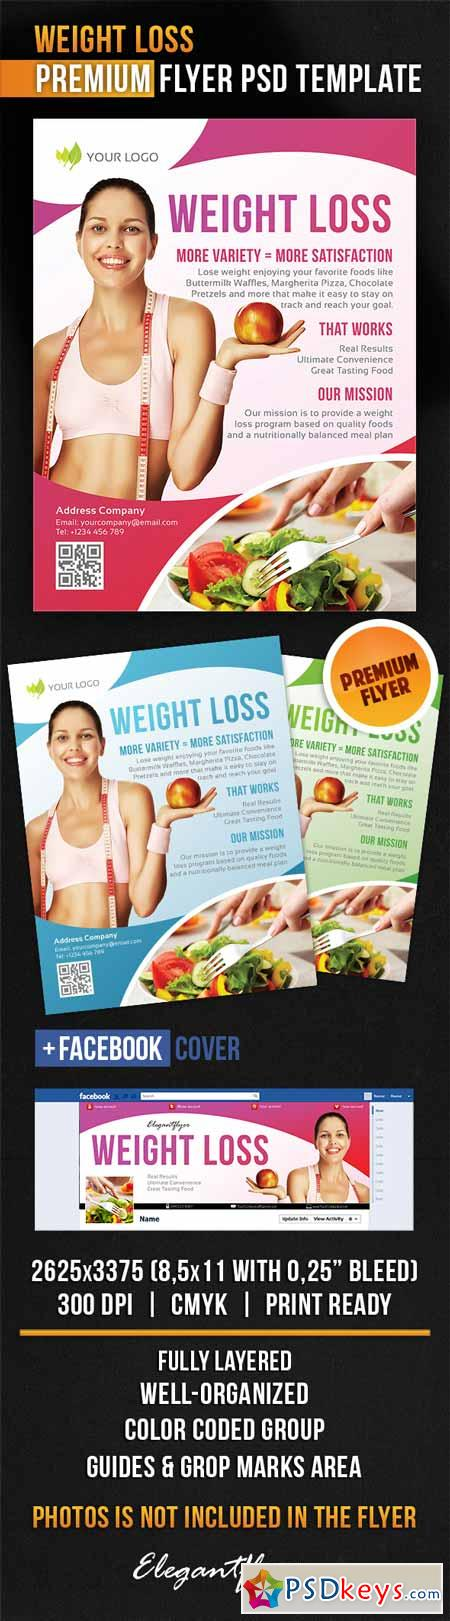 weight loss flyer templates free